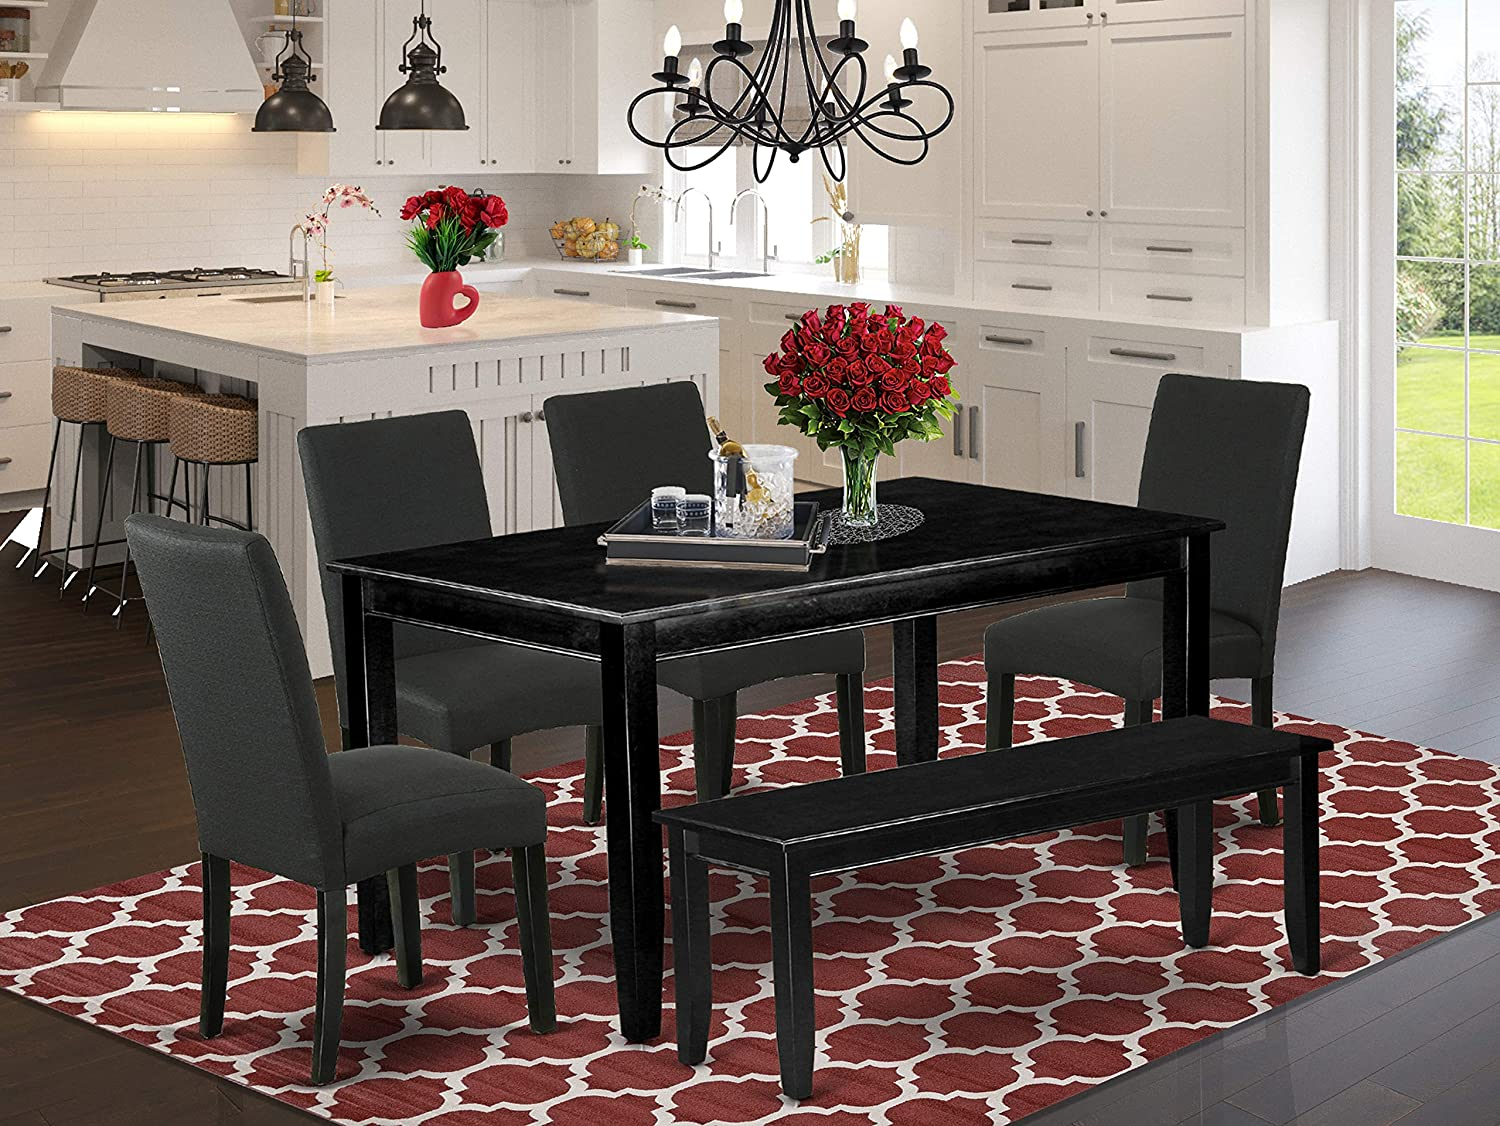 Amazon Com East West Furniture 6pc Rectangular 60 Inch Dining Table And Four Parson Chair With Black Finish Leg And Linen Fabric Color Plus 1 Bench 6 Furniture Decor